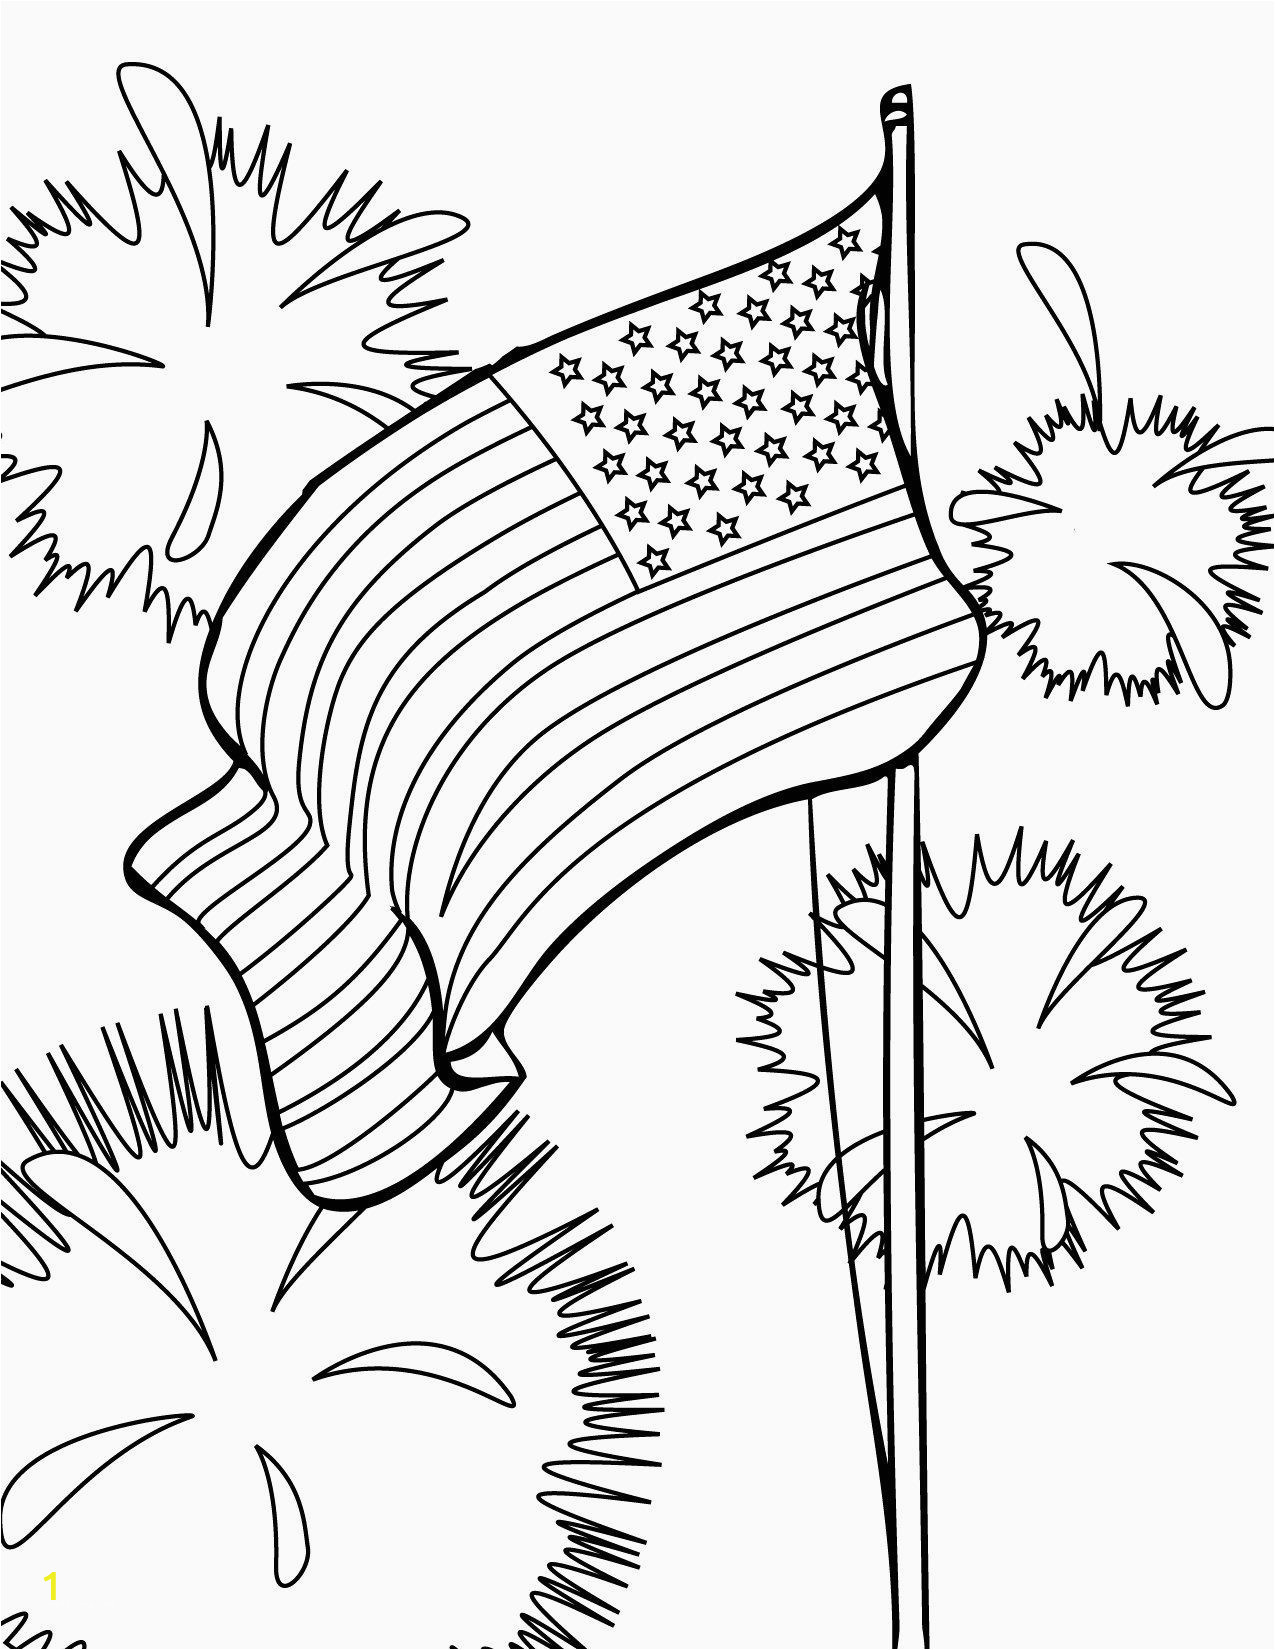 free printable 4th of july coloring pages best of italian flag coloring sheet elegant the best free challenge of free printable 4th of july coloring pages